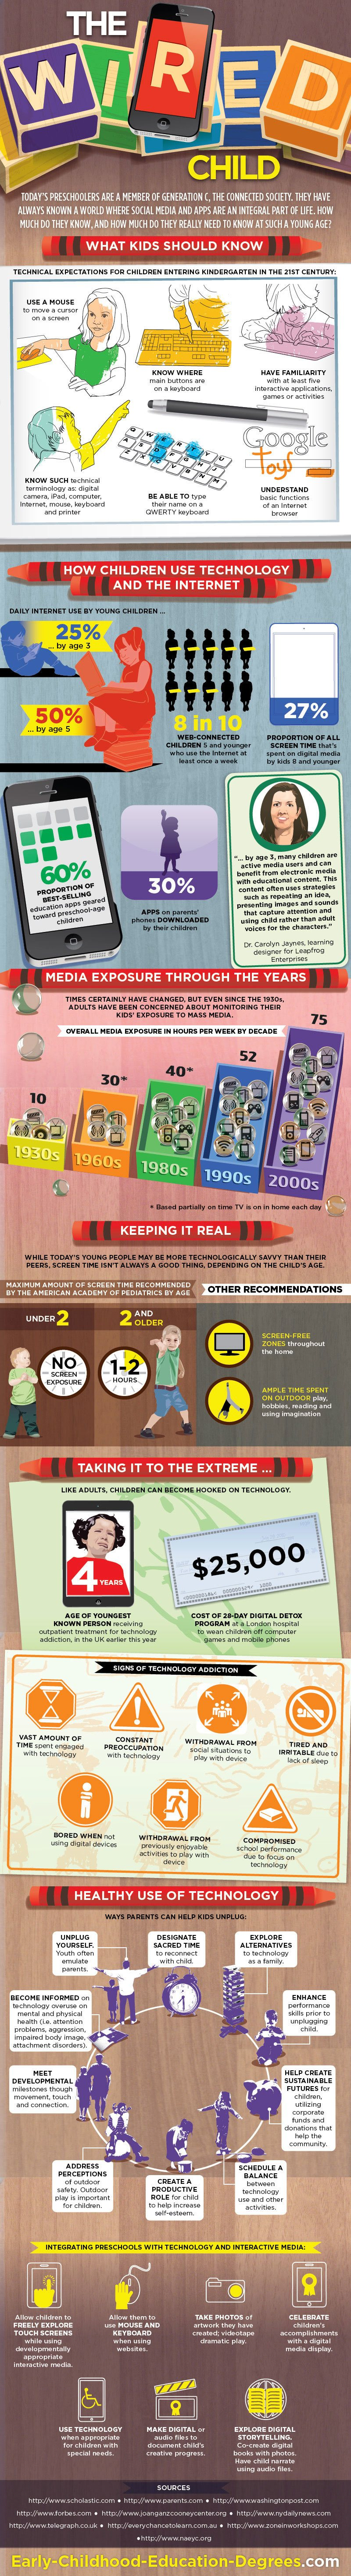 The-Wired-Child-Infographic